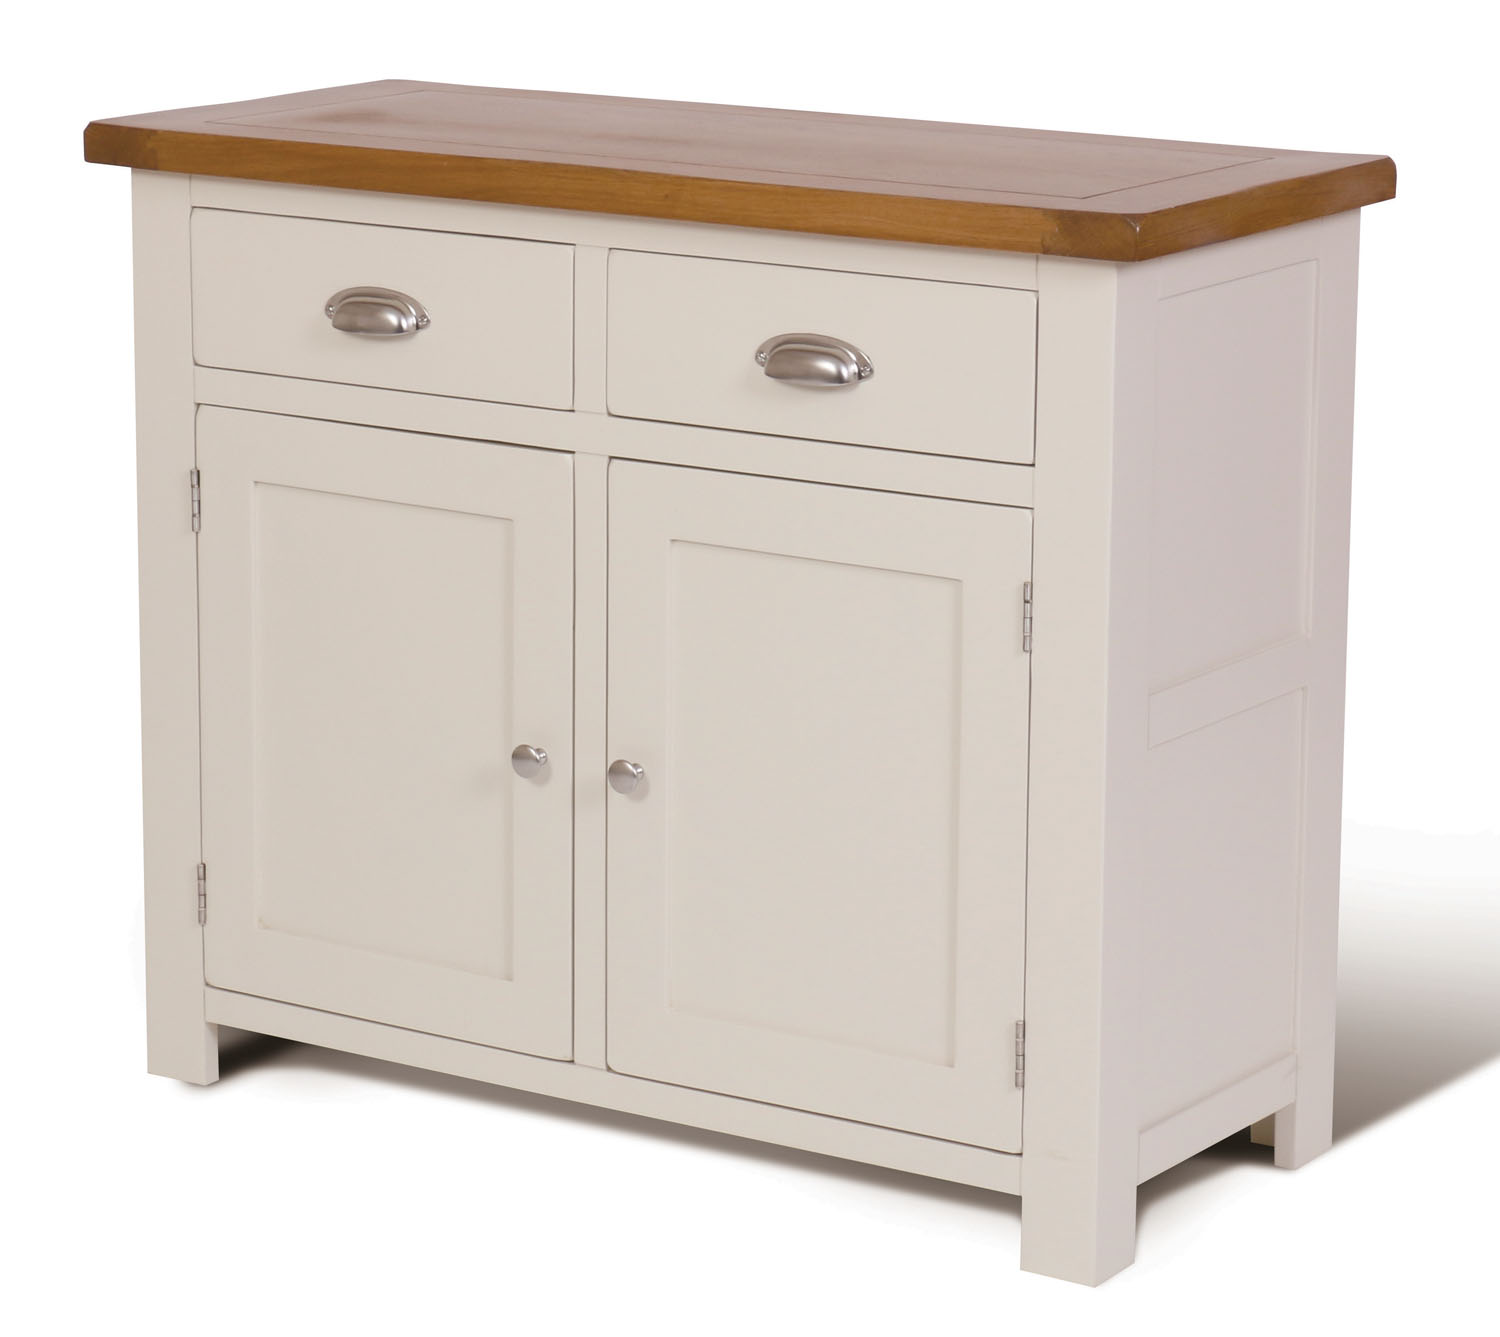 Painted Wooden Sideboard ~ Small white painted oak sideboard narrow wooden